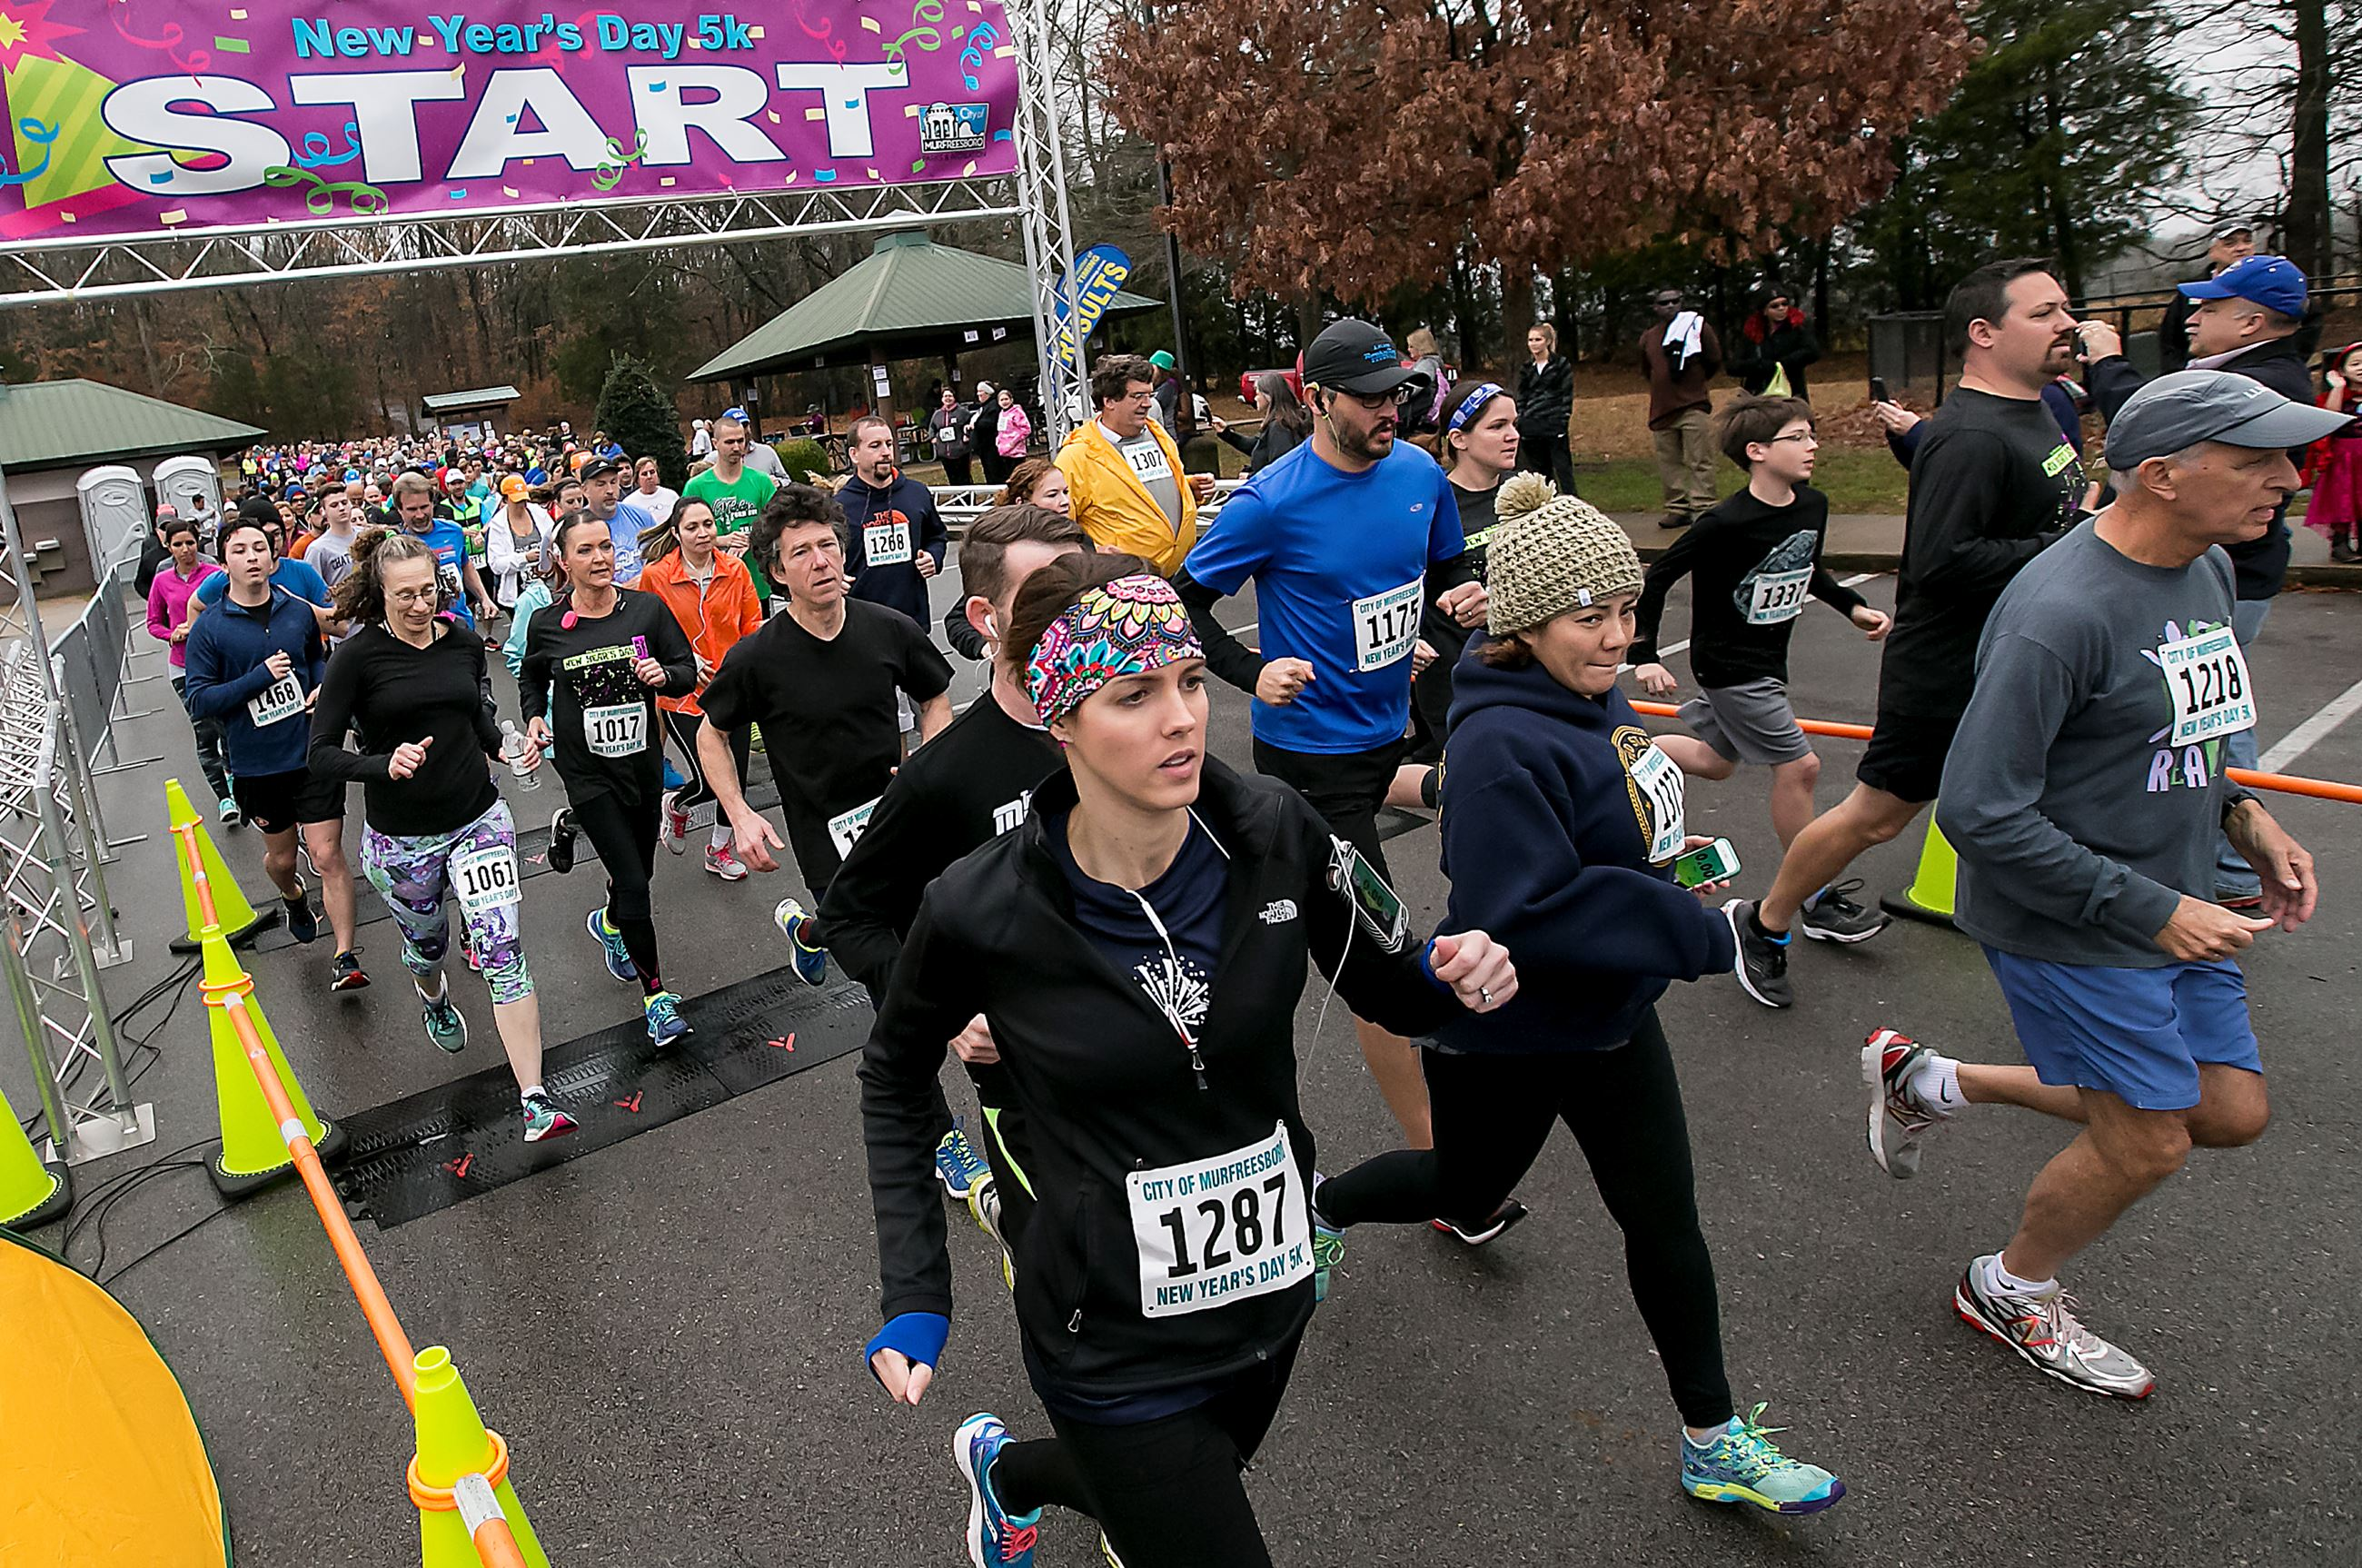 Photo of New Year's Day 5k